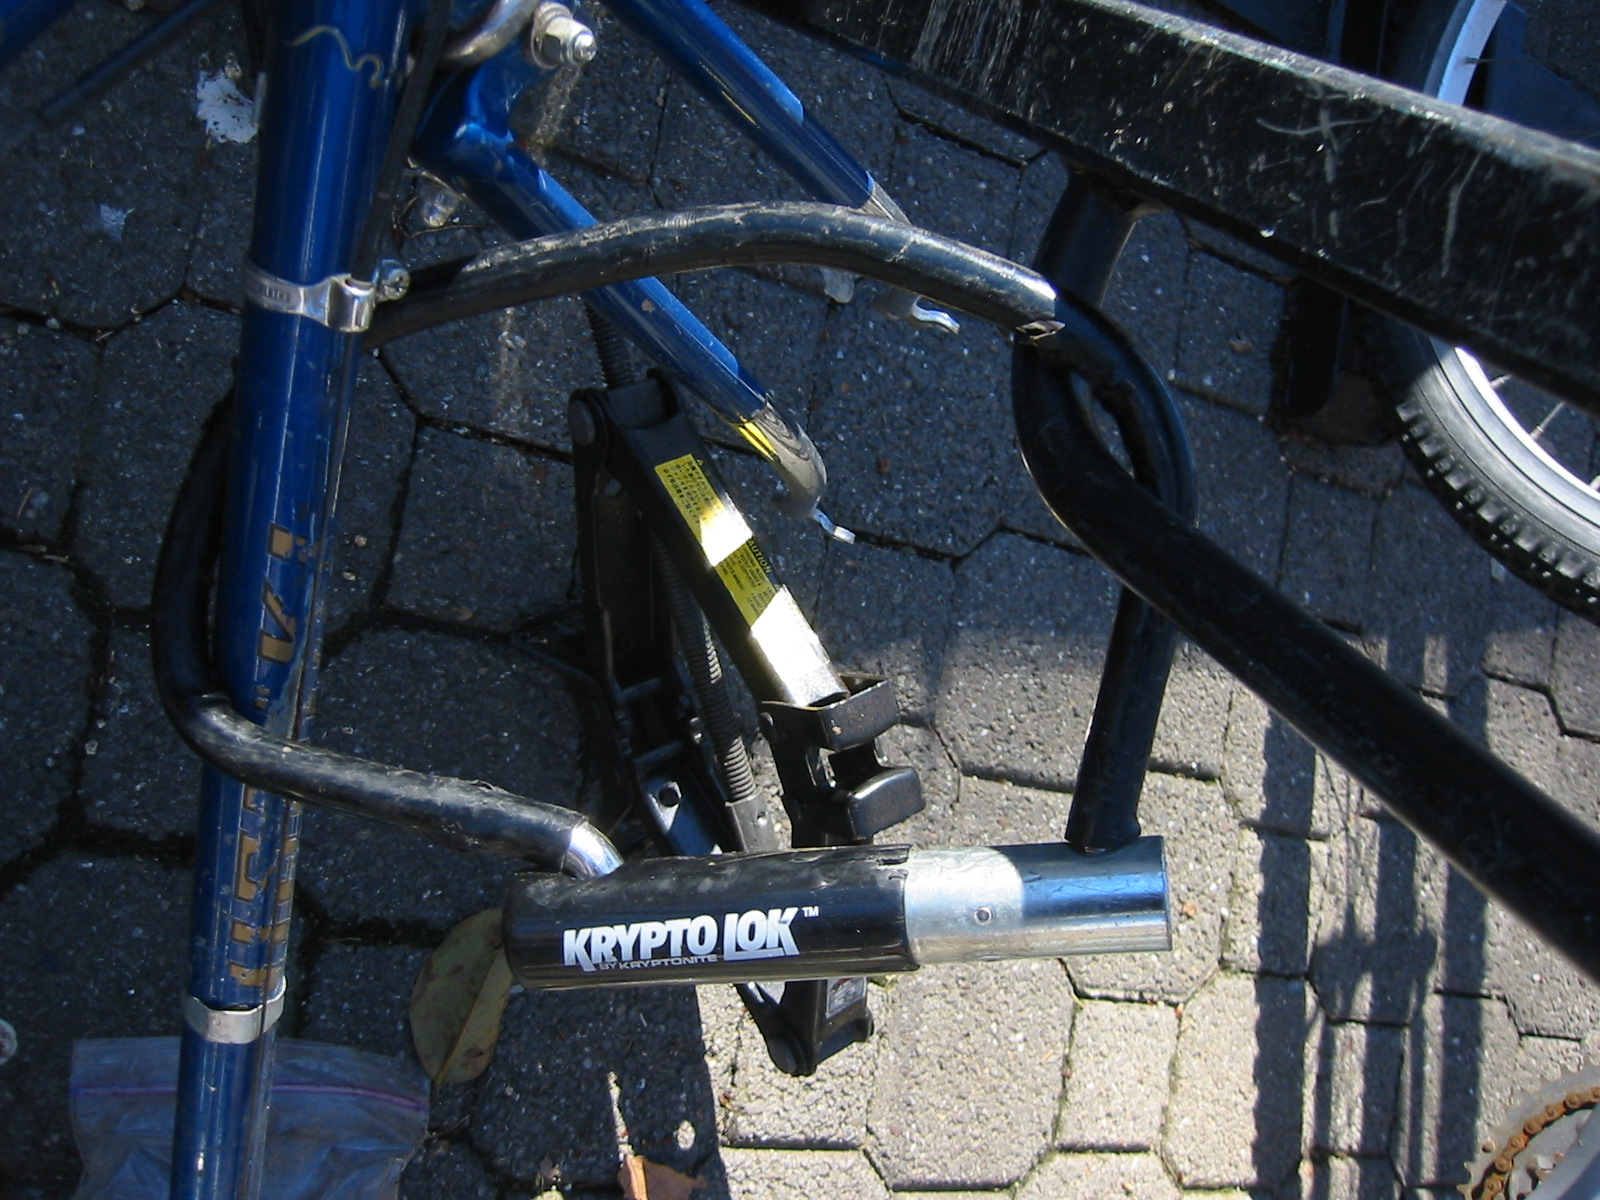 Bike lock cracked by jack.jpg